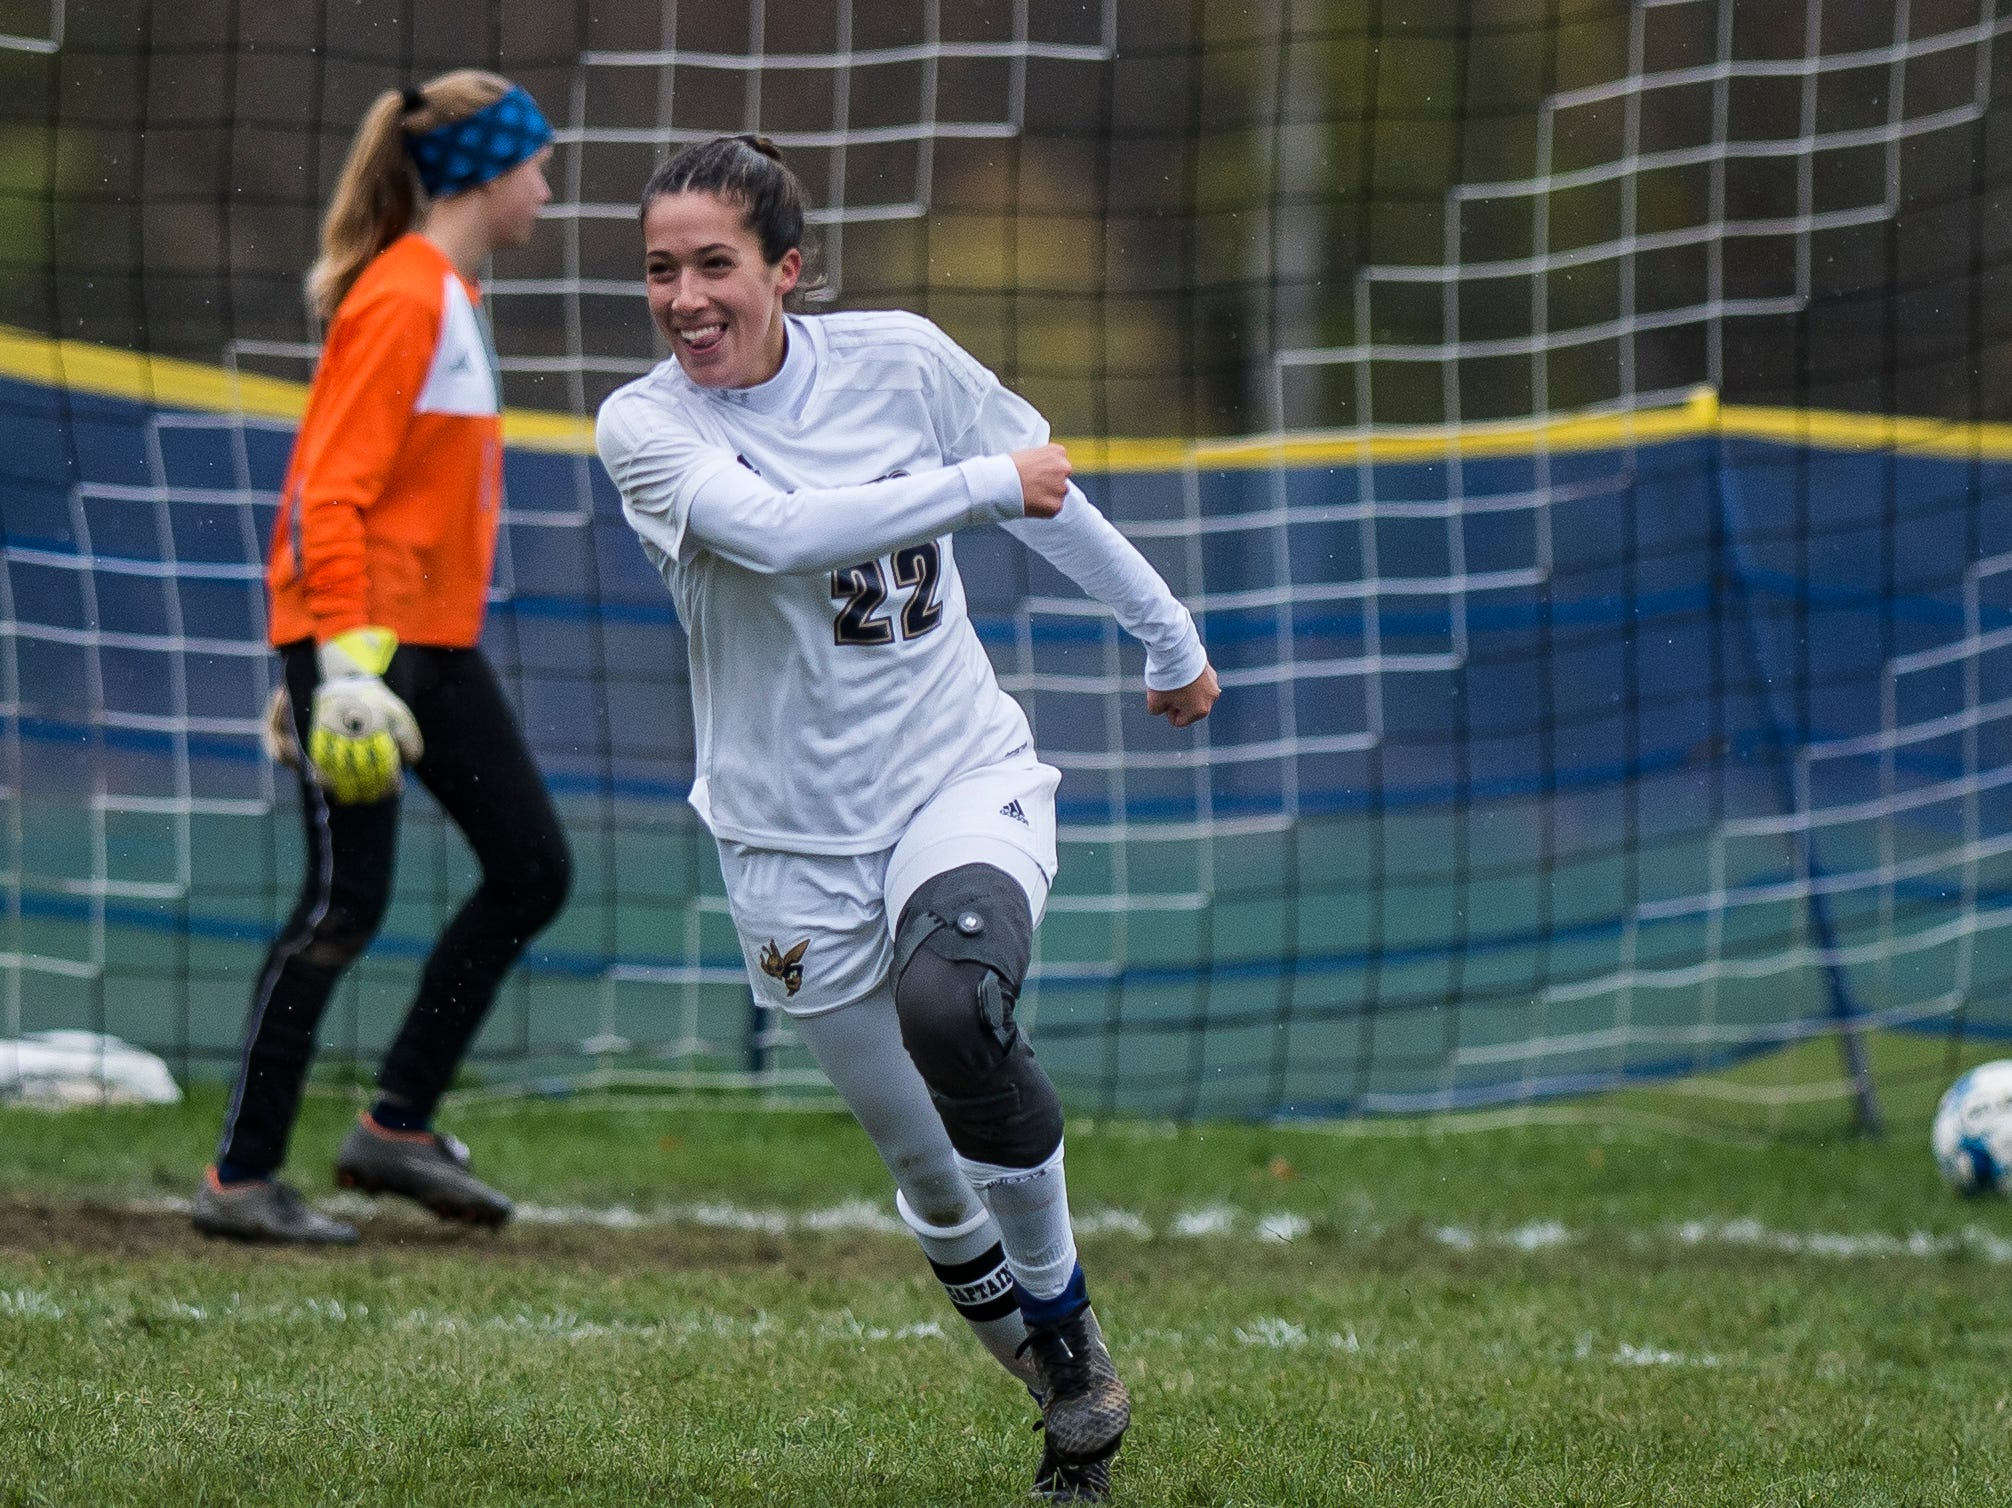 Essex #22 Huntyr Poulin gets a third penalty kick past MMU goalie Anna Betz during their quarter-final game in Jericho on Saturday, Oct. 27, 2018, that went into double overtime and shootout. Essex took the penalty kick contest to win, 4-1.